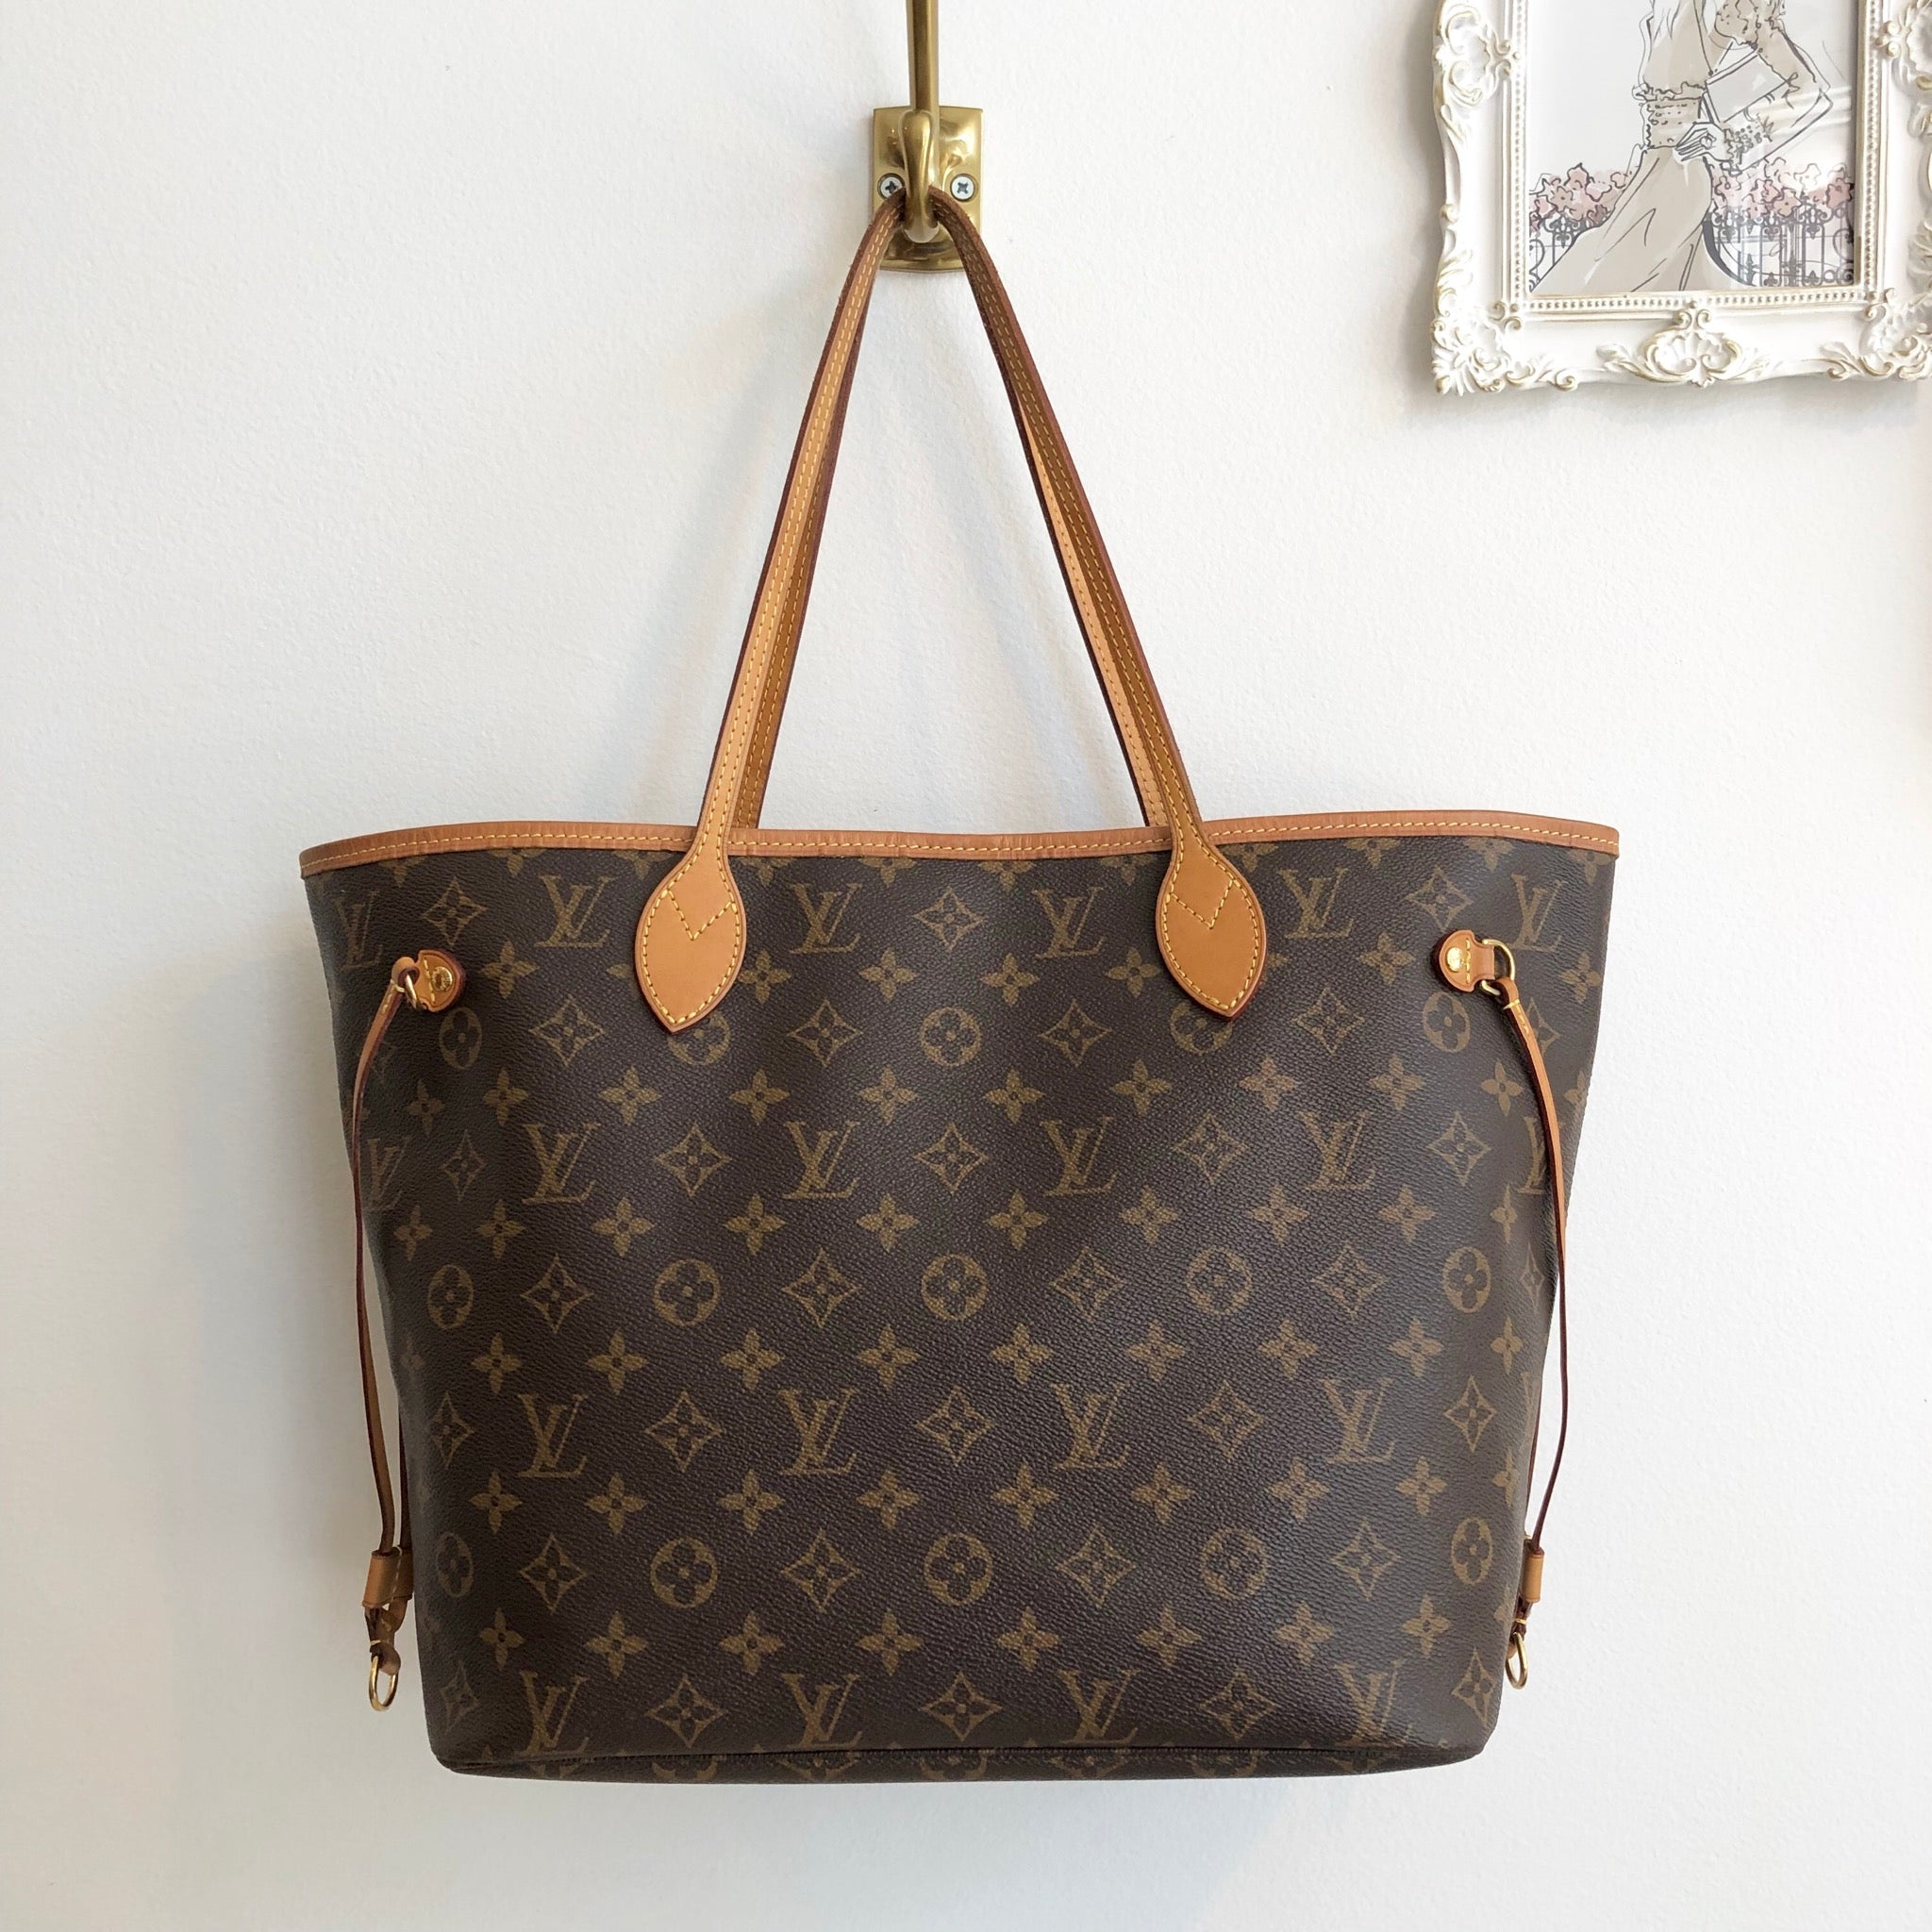 Authentic LOUIS VUITTON Monogram Neverfull MM Pivione